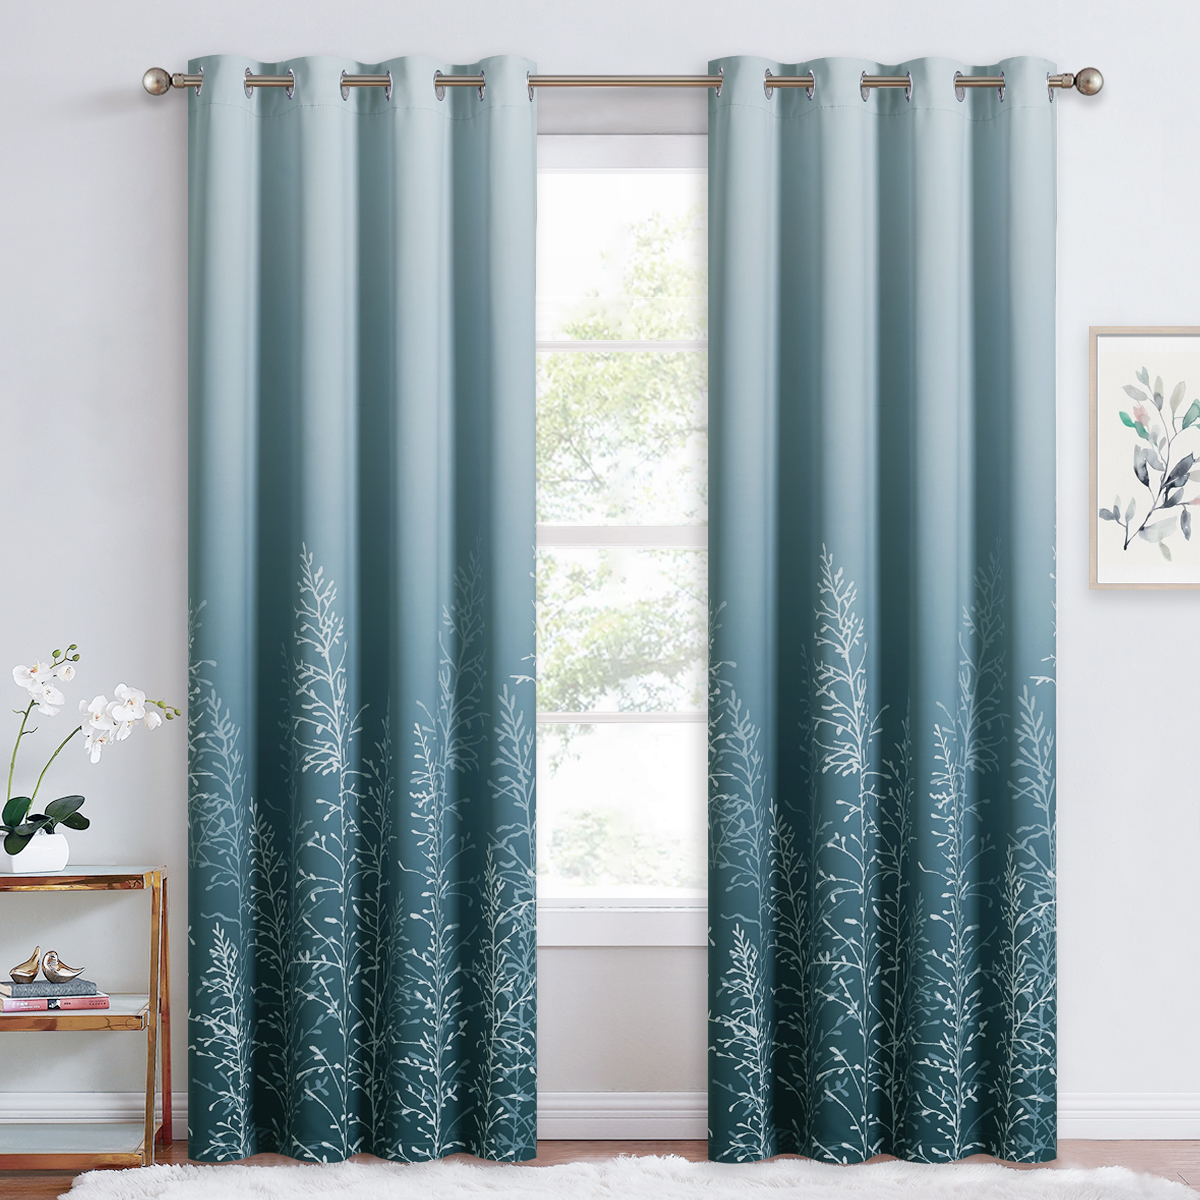 Branch Pattern Room Darkening Curtains, Sold as 1 Panel